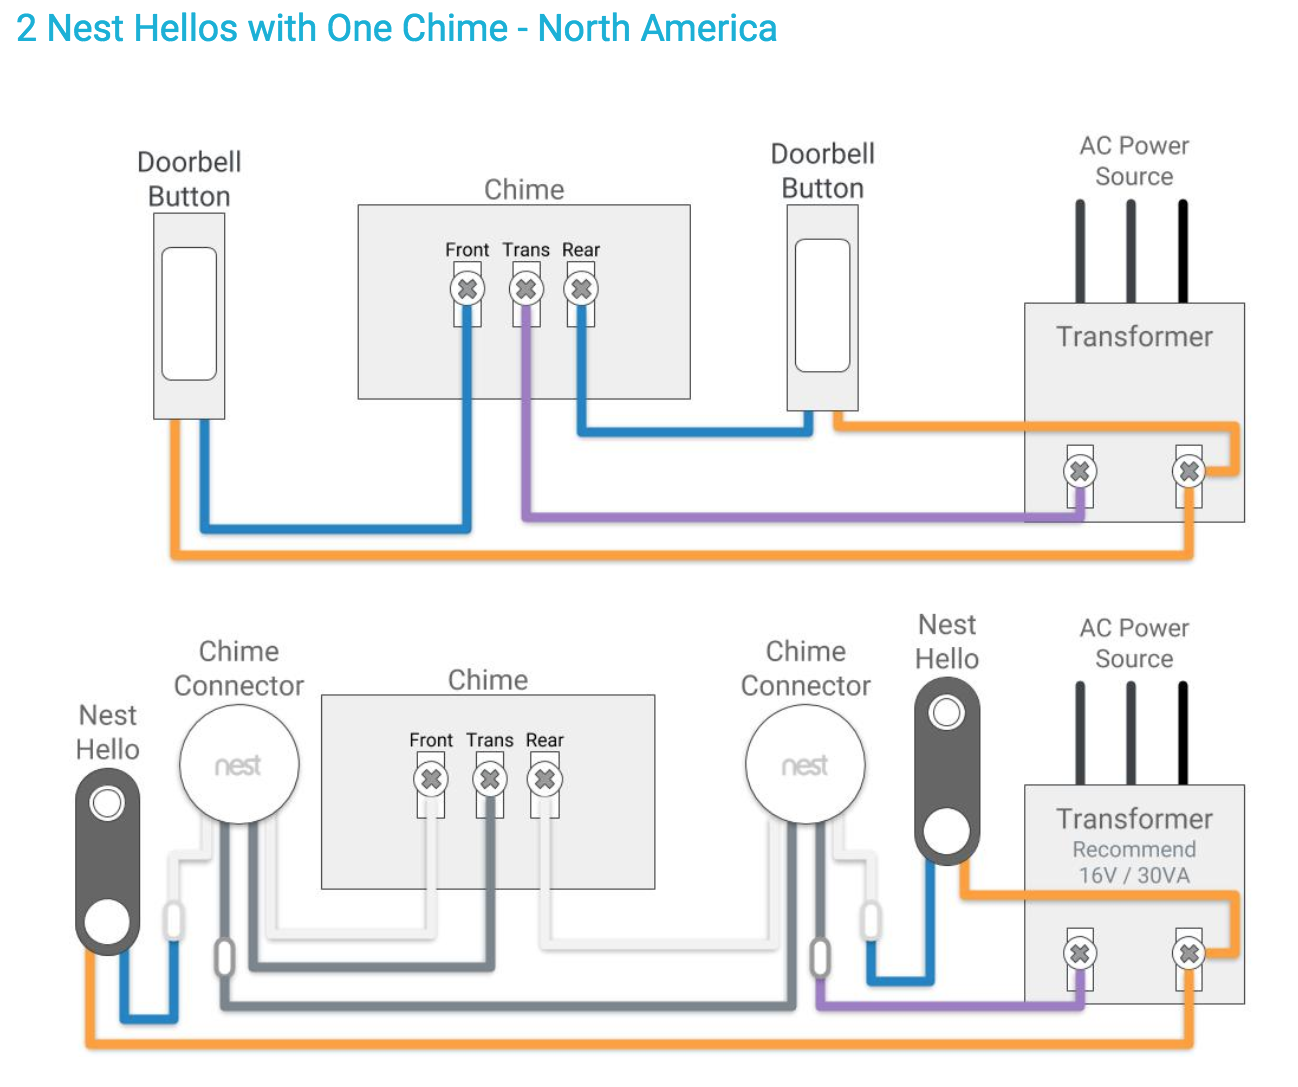 wiring diagram for phone line how do i connect two nest hello on one chime google nest community  nest hello on one chime